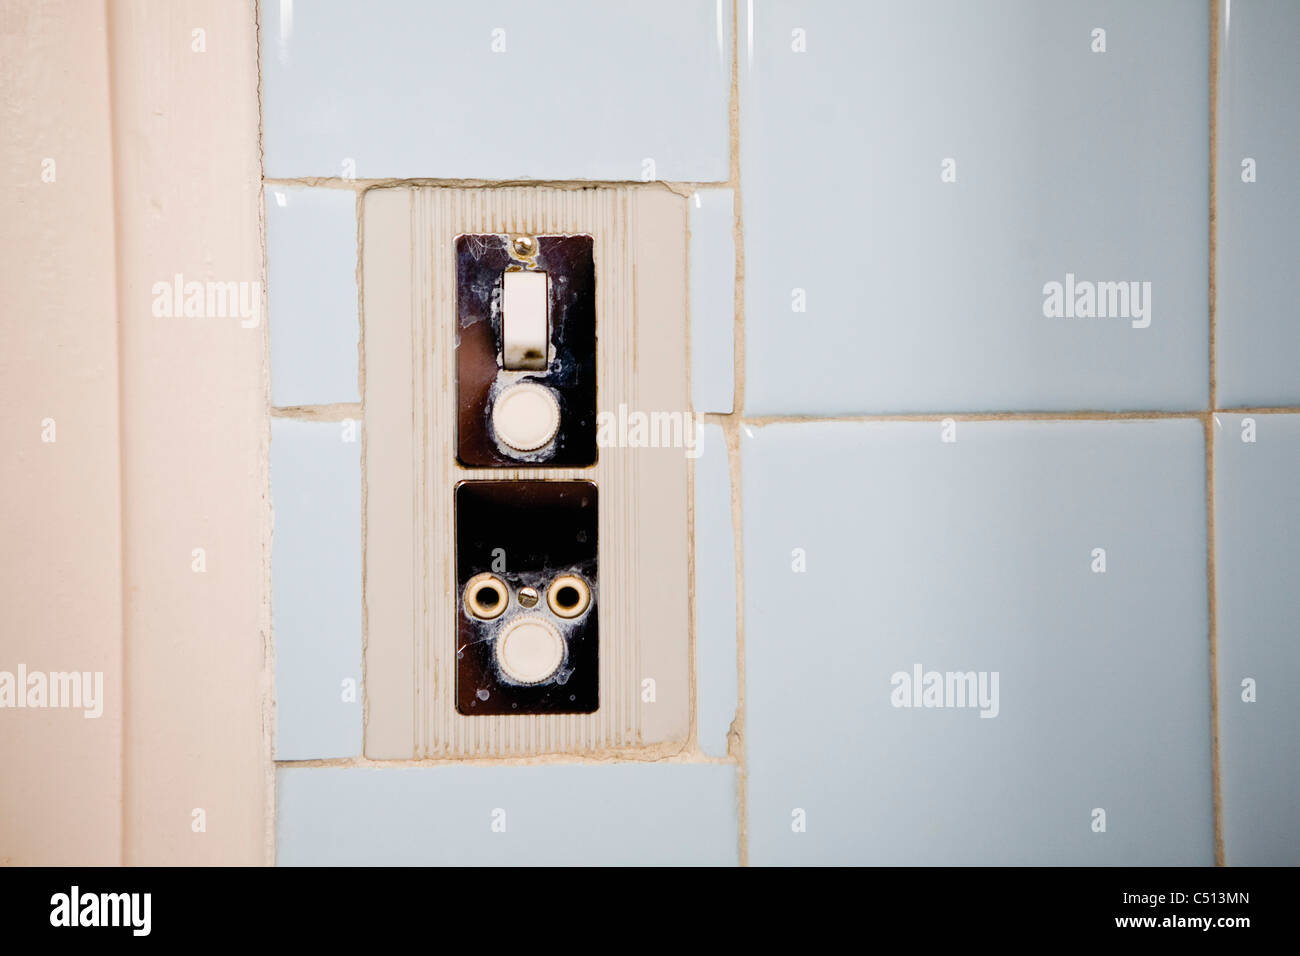 Light switch and electrical outlet - Stock Image